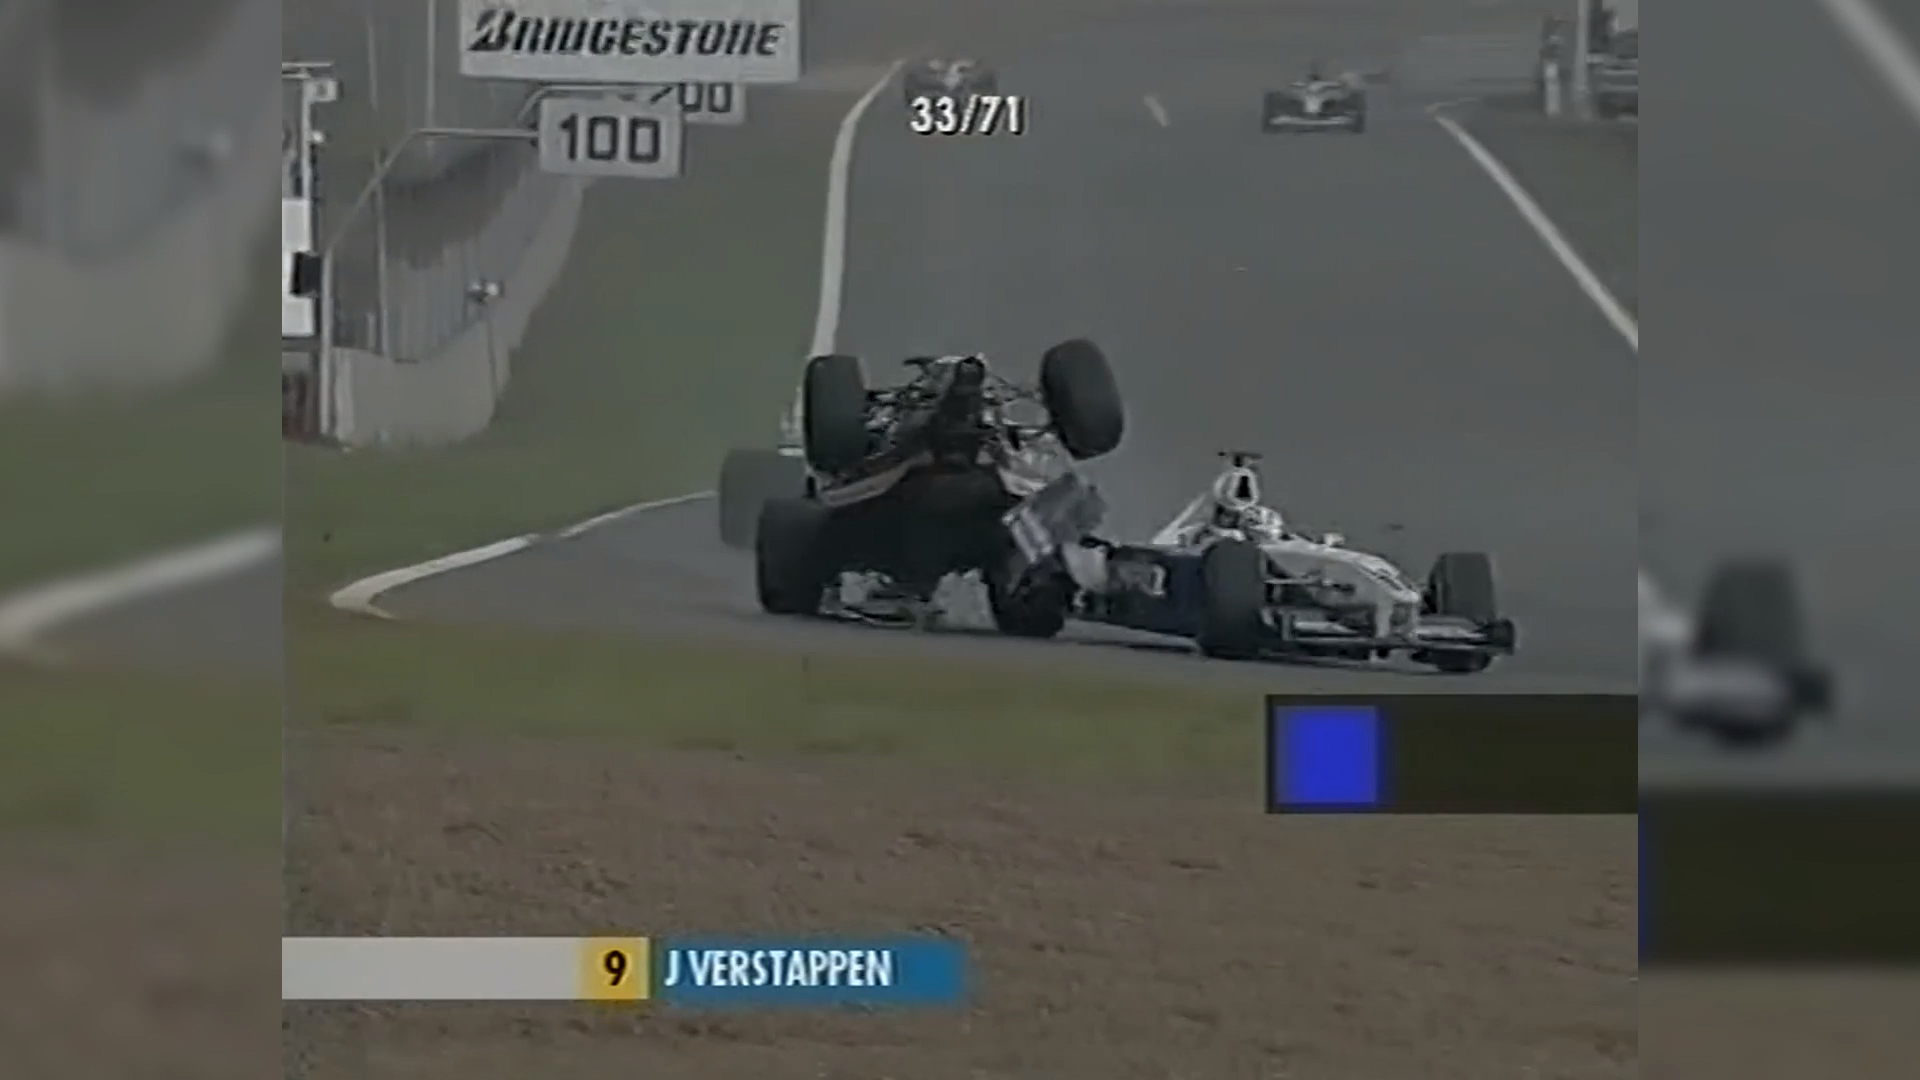 Verstappen Sr's similar F1 crash